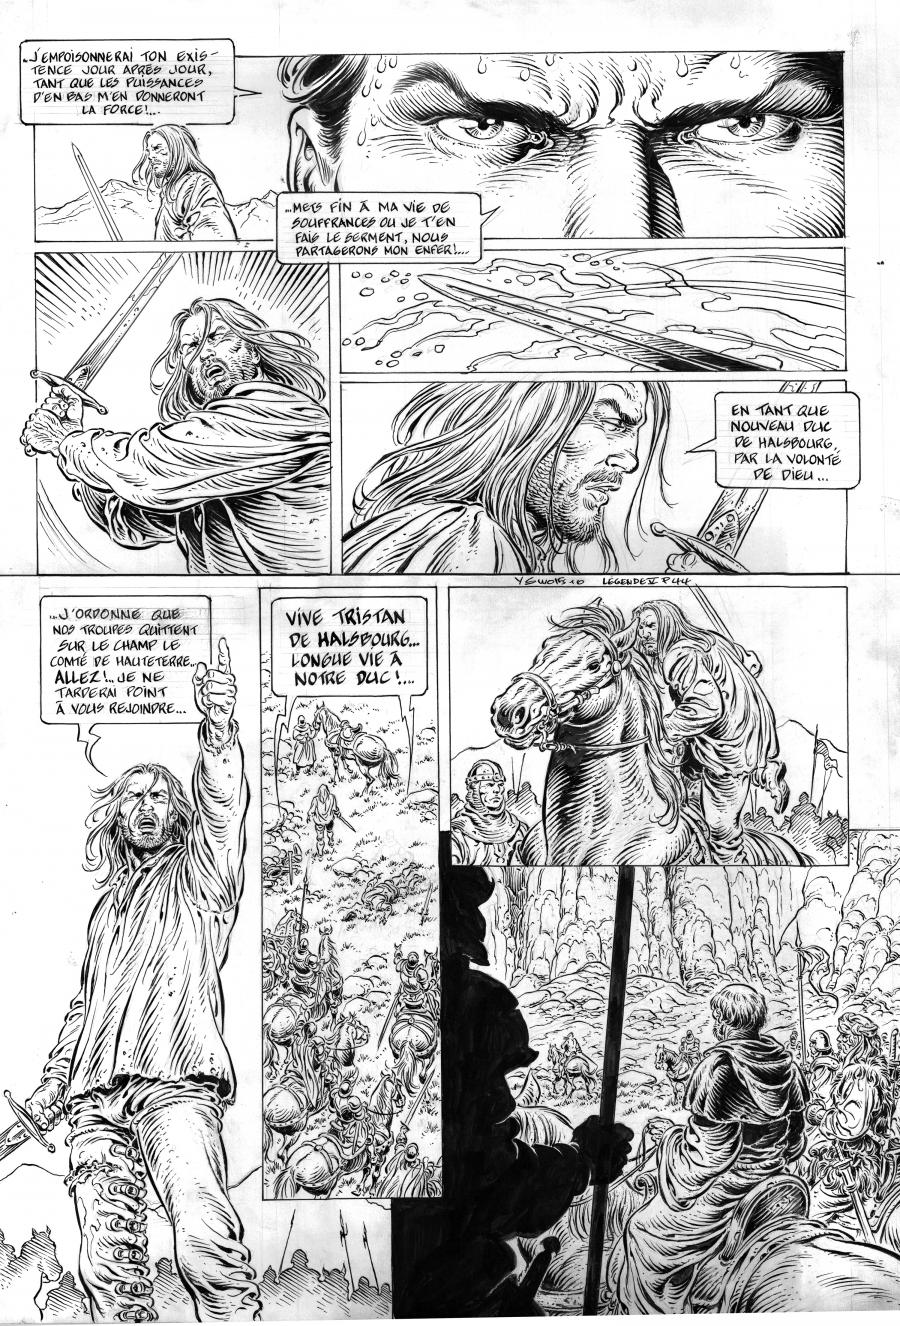 Original comic page 44 from LÉGENDE Issue 5 by Yves SWOLFS